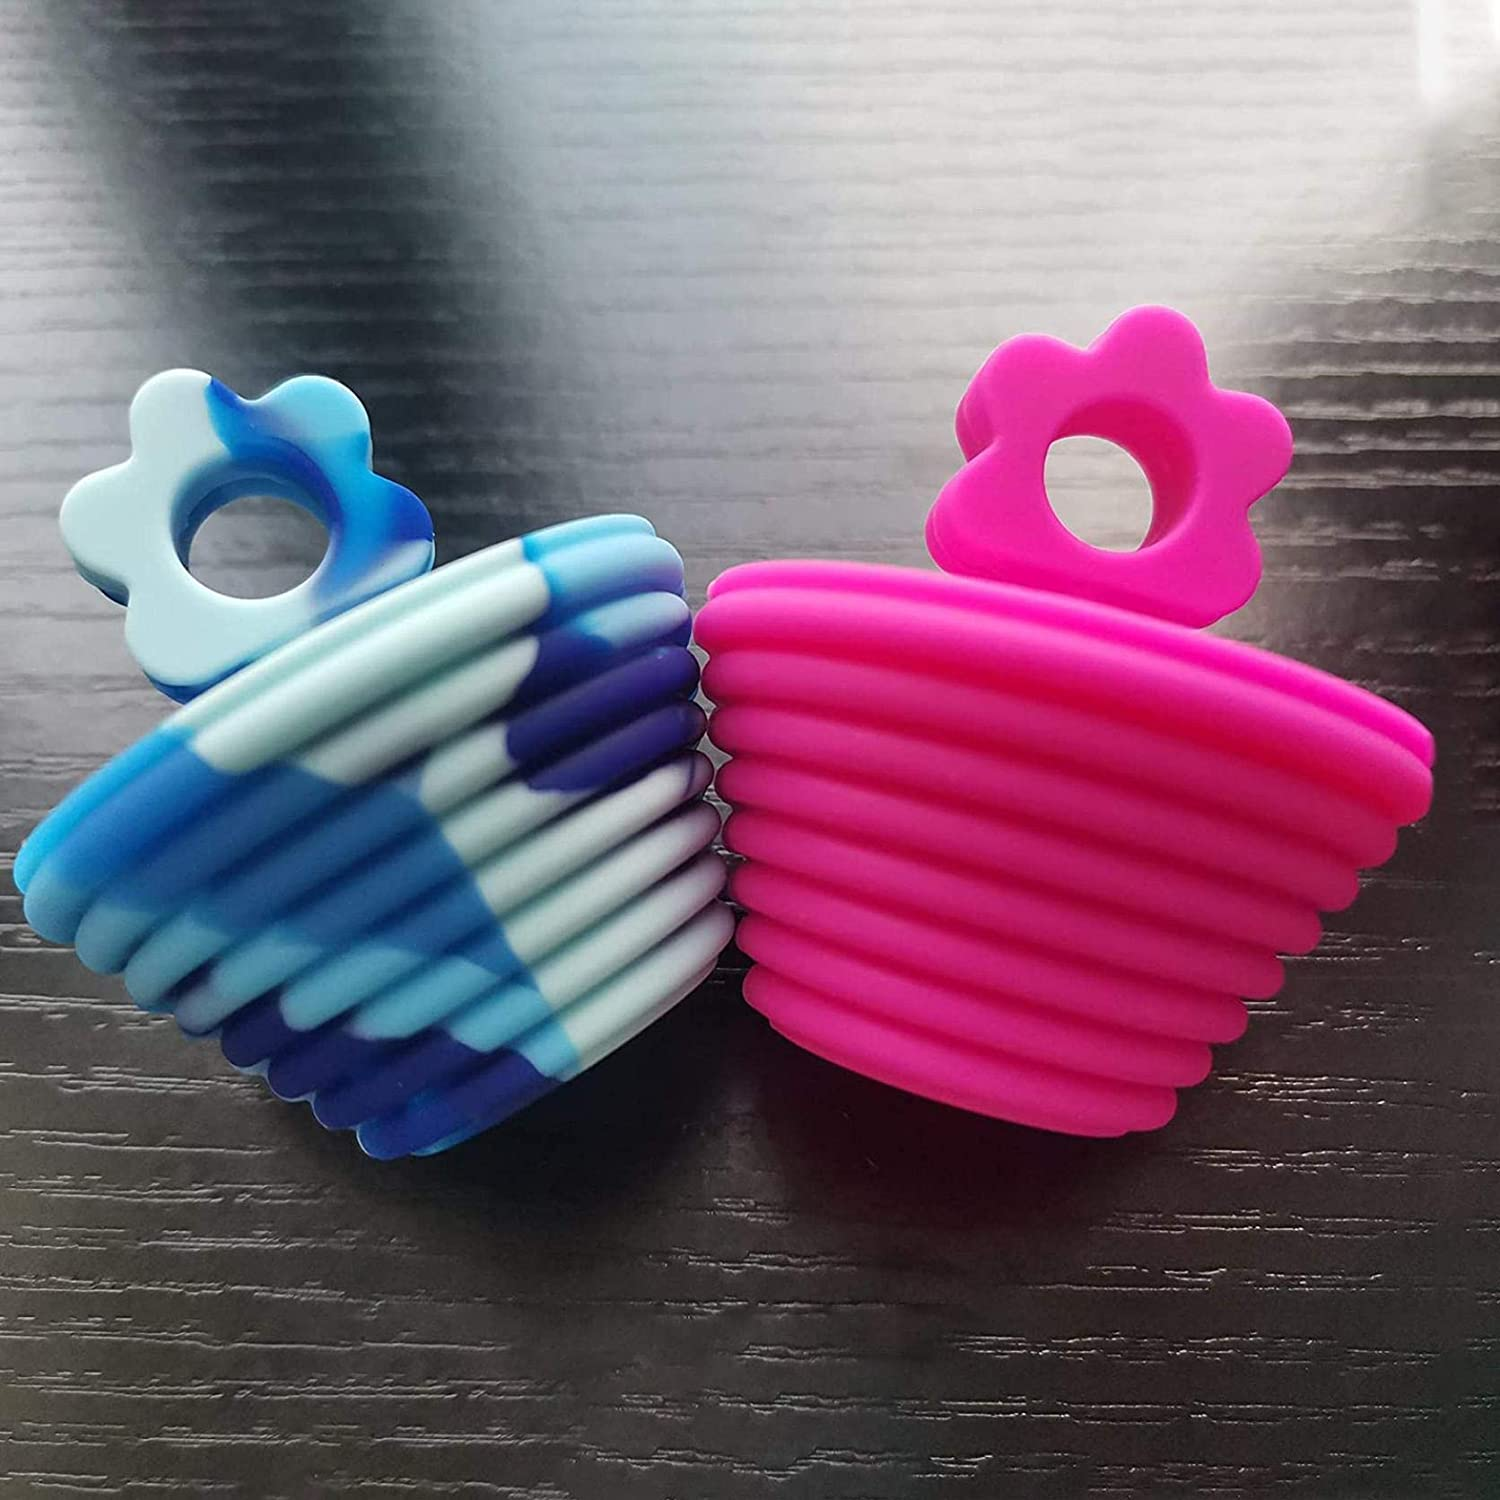 Ruidada Flower Silicone Plugs Wear-Resistant And Corrosion-Resistant Bathtub Plugs For Bathrooms Kitchens And Sinks 2 PCS